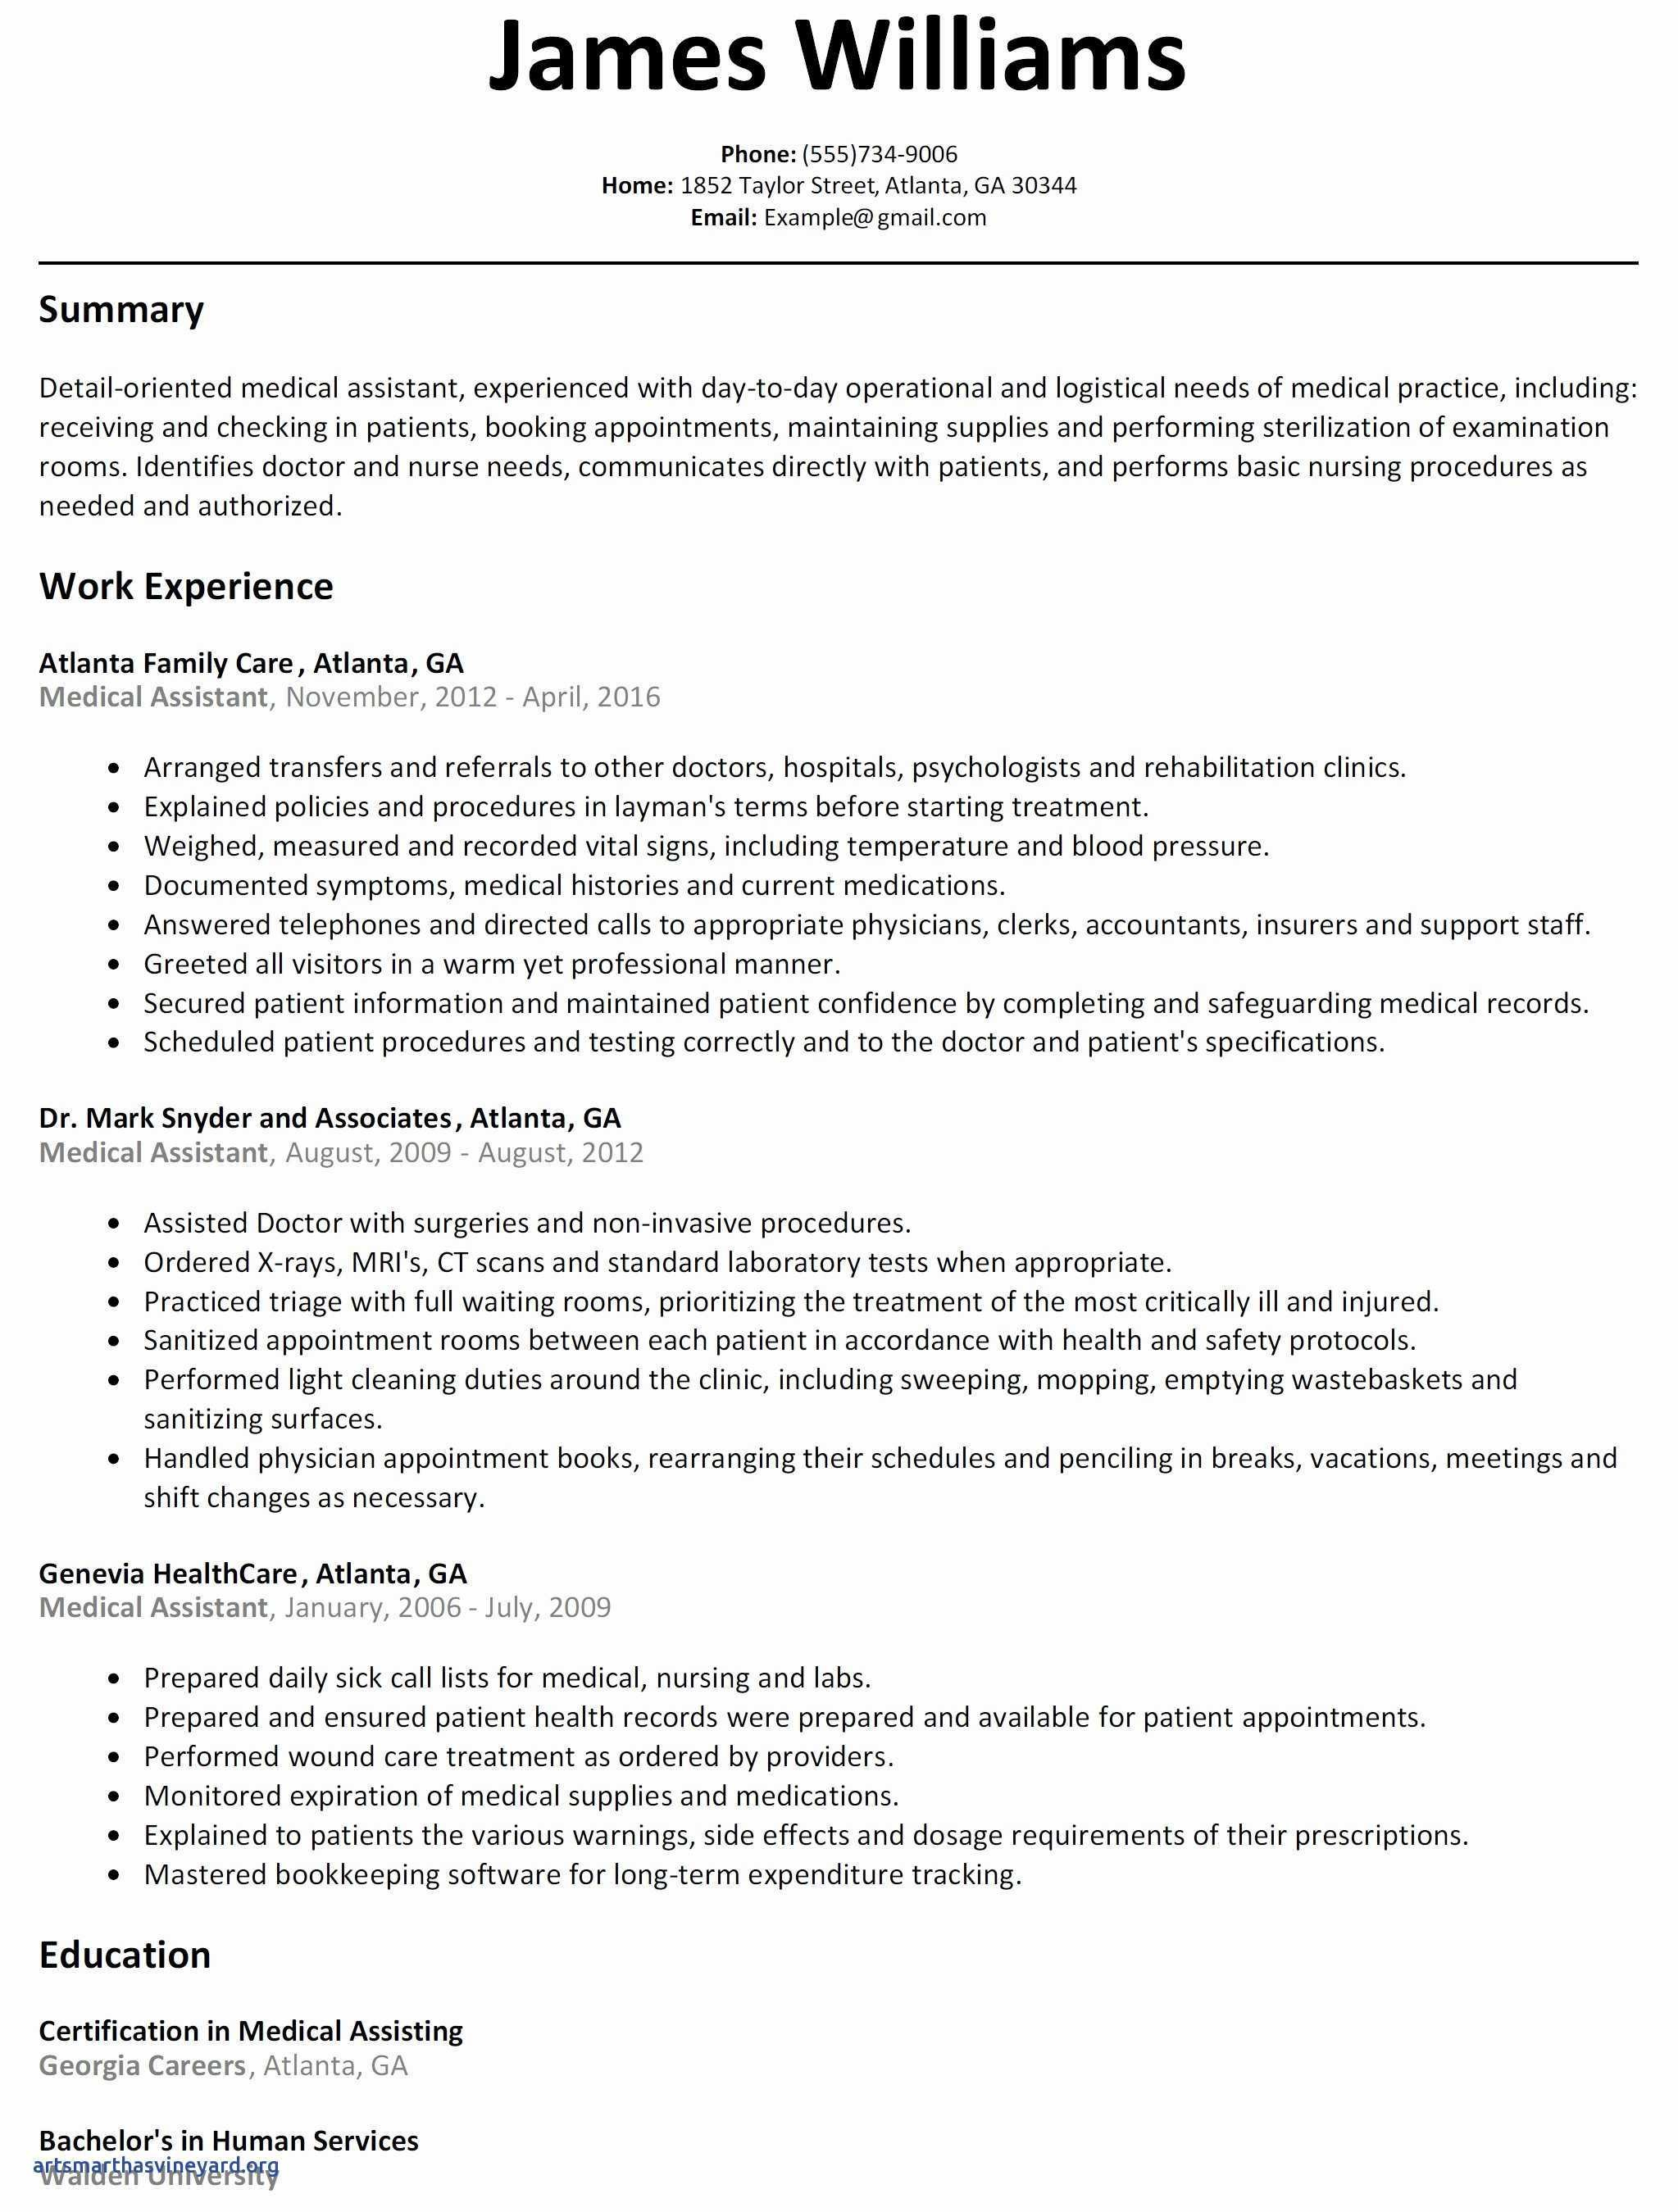 Home Care Nursing Resume - 23 Nursing School Resume